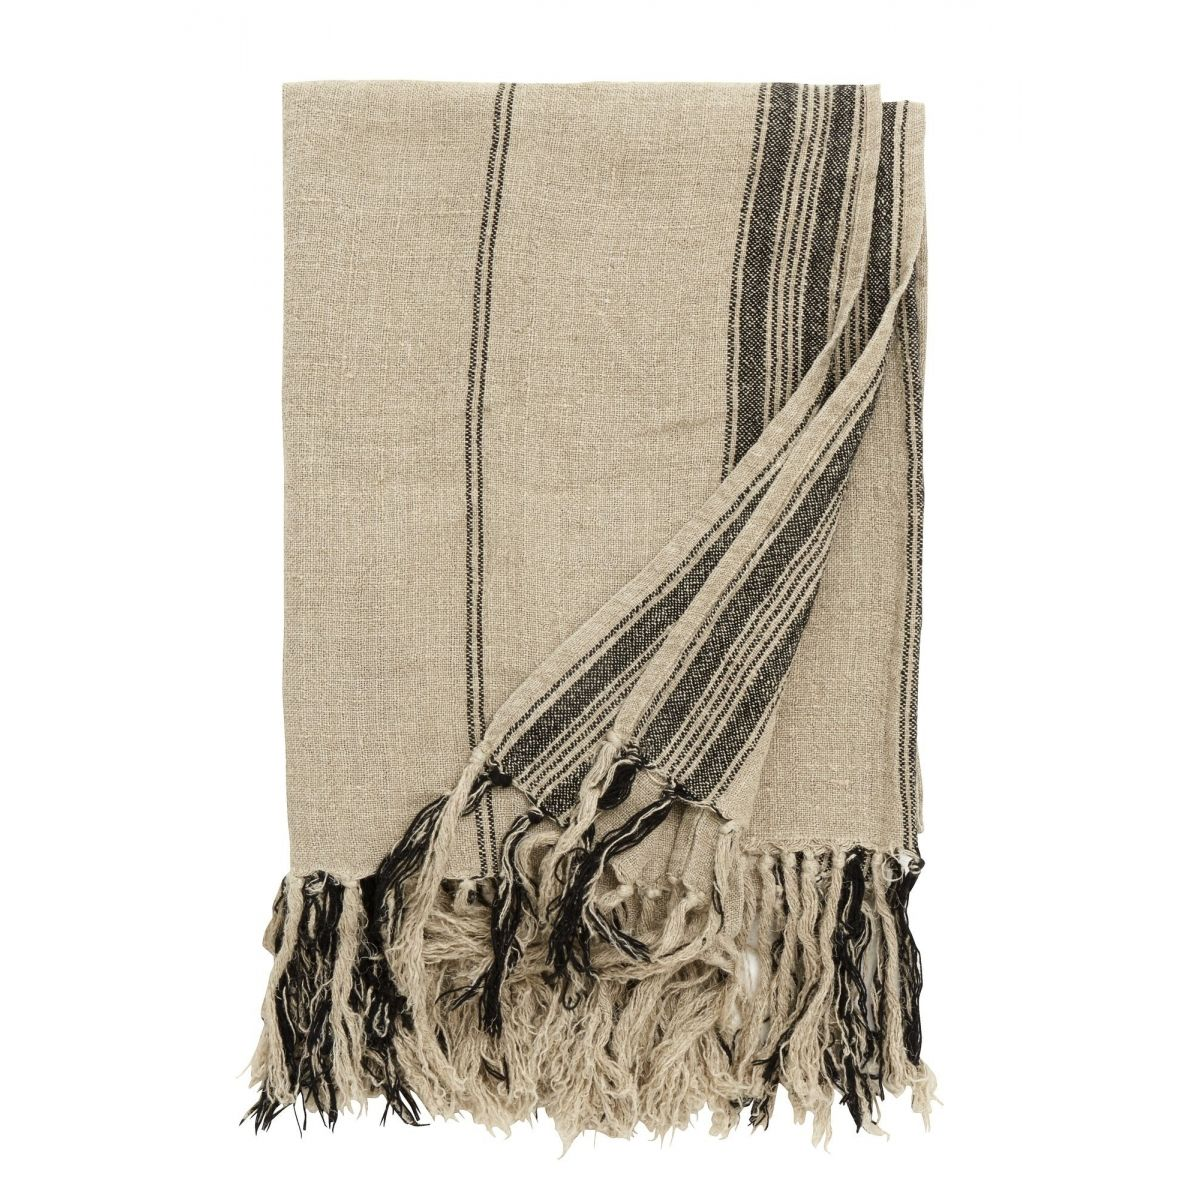 Nordal Blanket, natural linen w/black stripes, 130x160cm